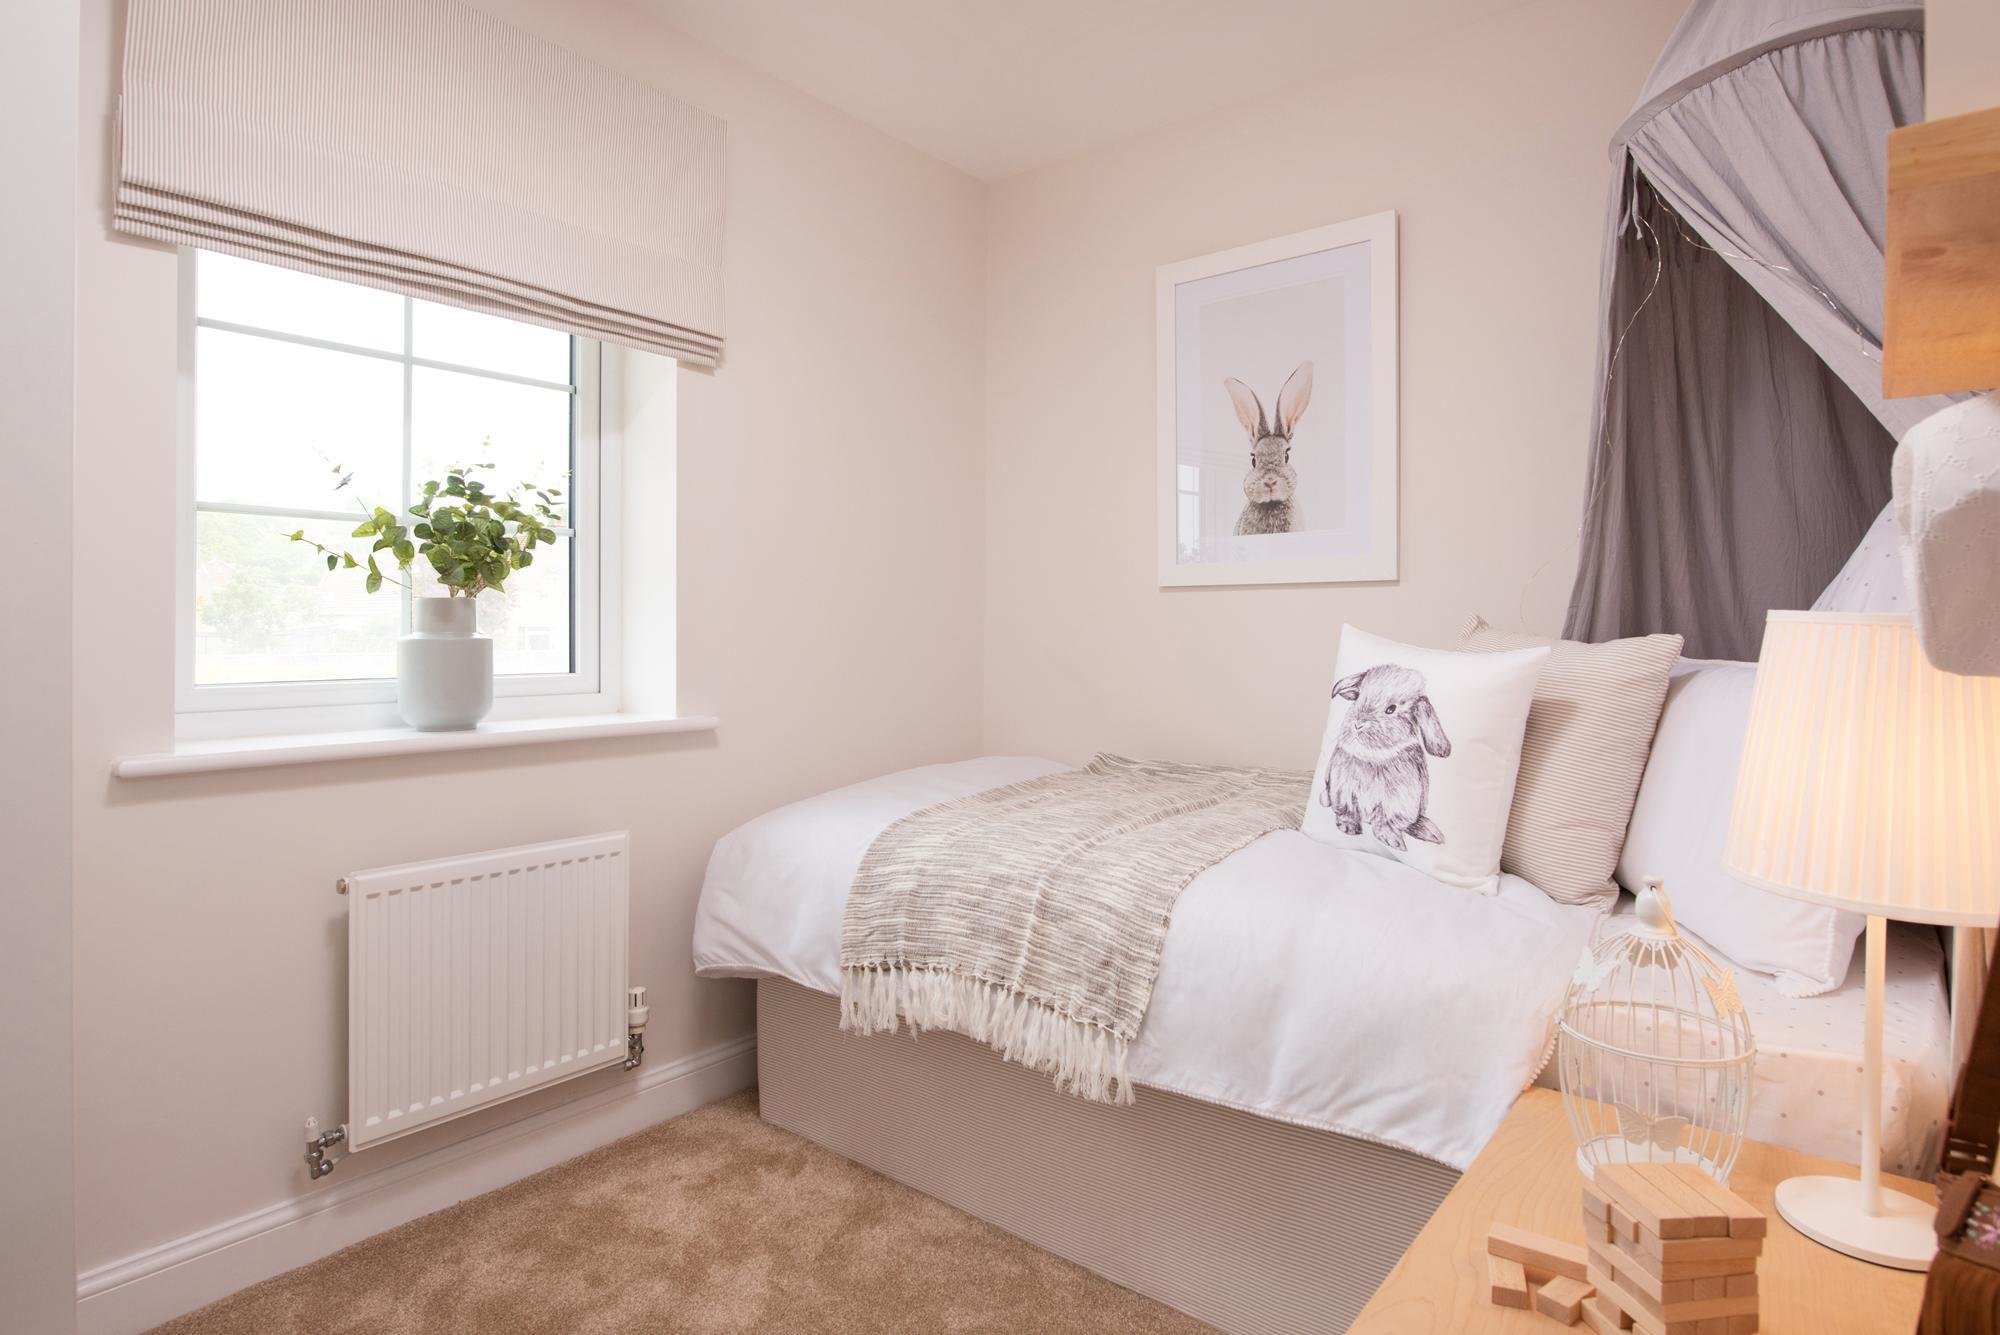 plot 29 sandridge place melksham sn12 7js melksham new homes